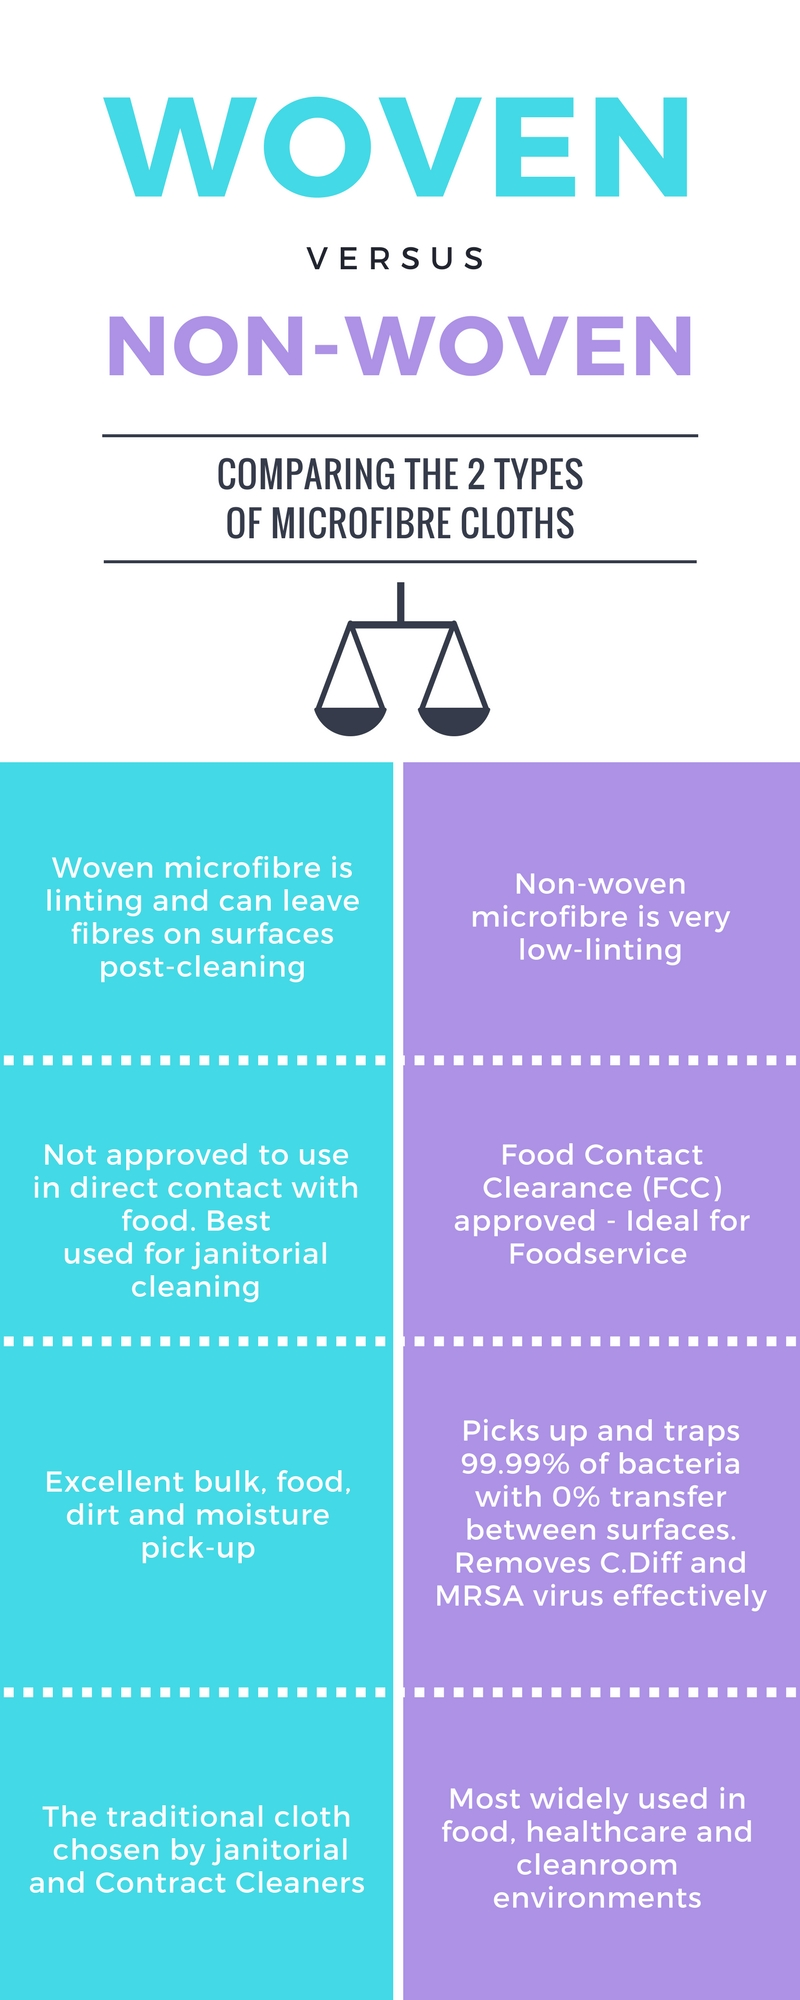 Woven Vs Non-Woven Microfibres – Which Is Best?